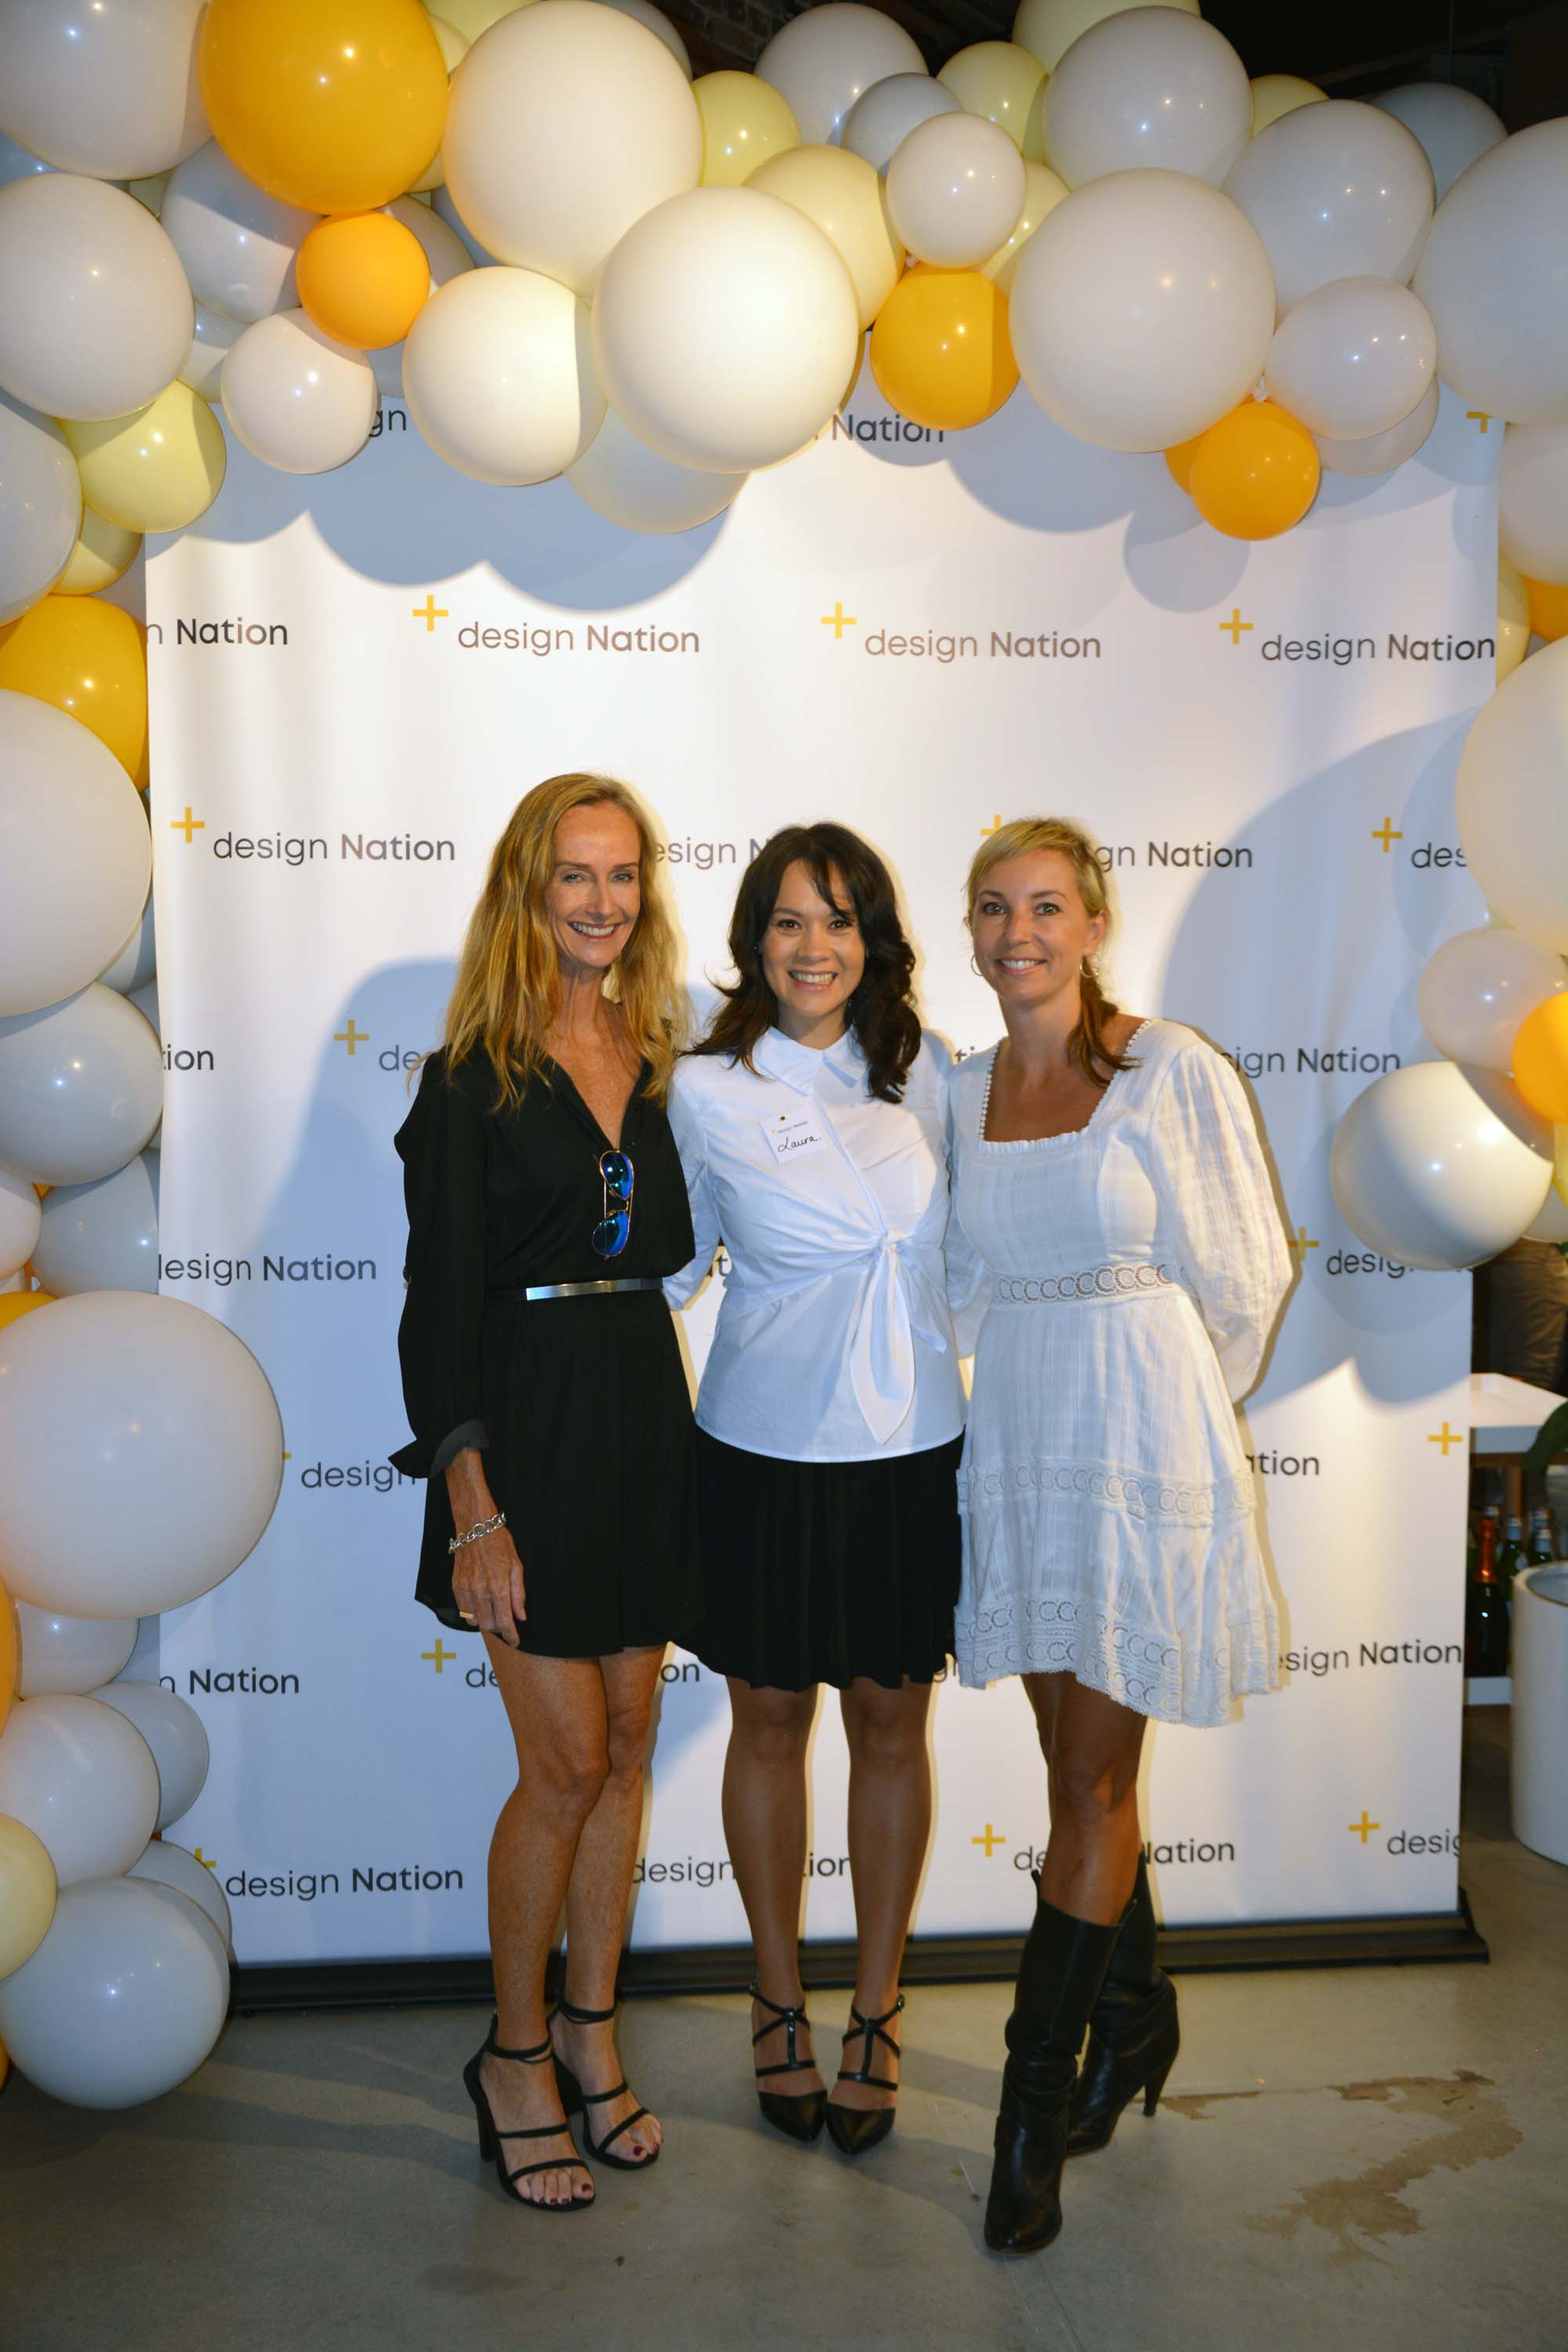 DNA_Sydney_Launch_event (4)